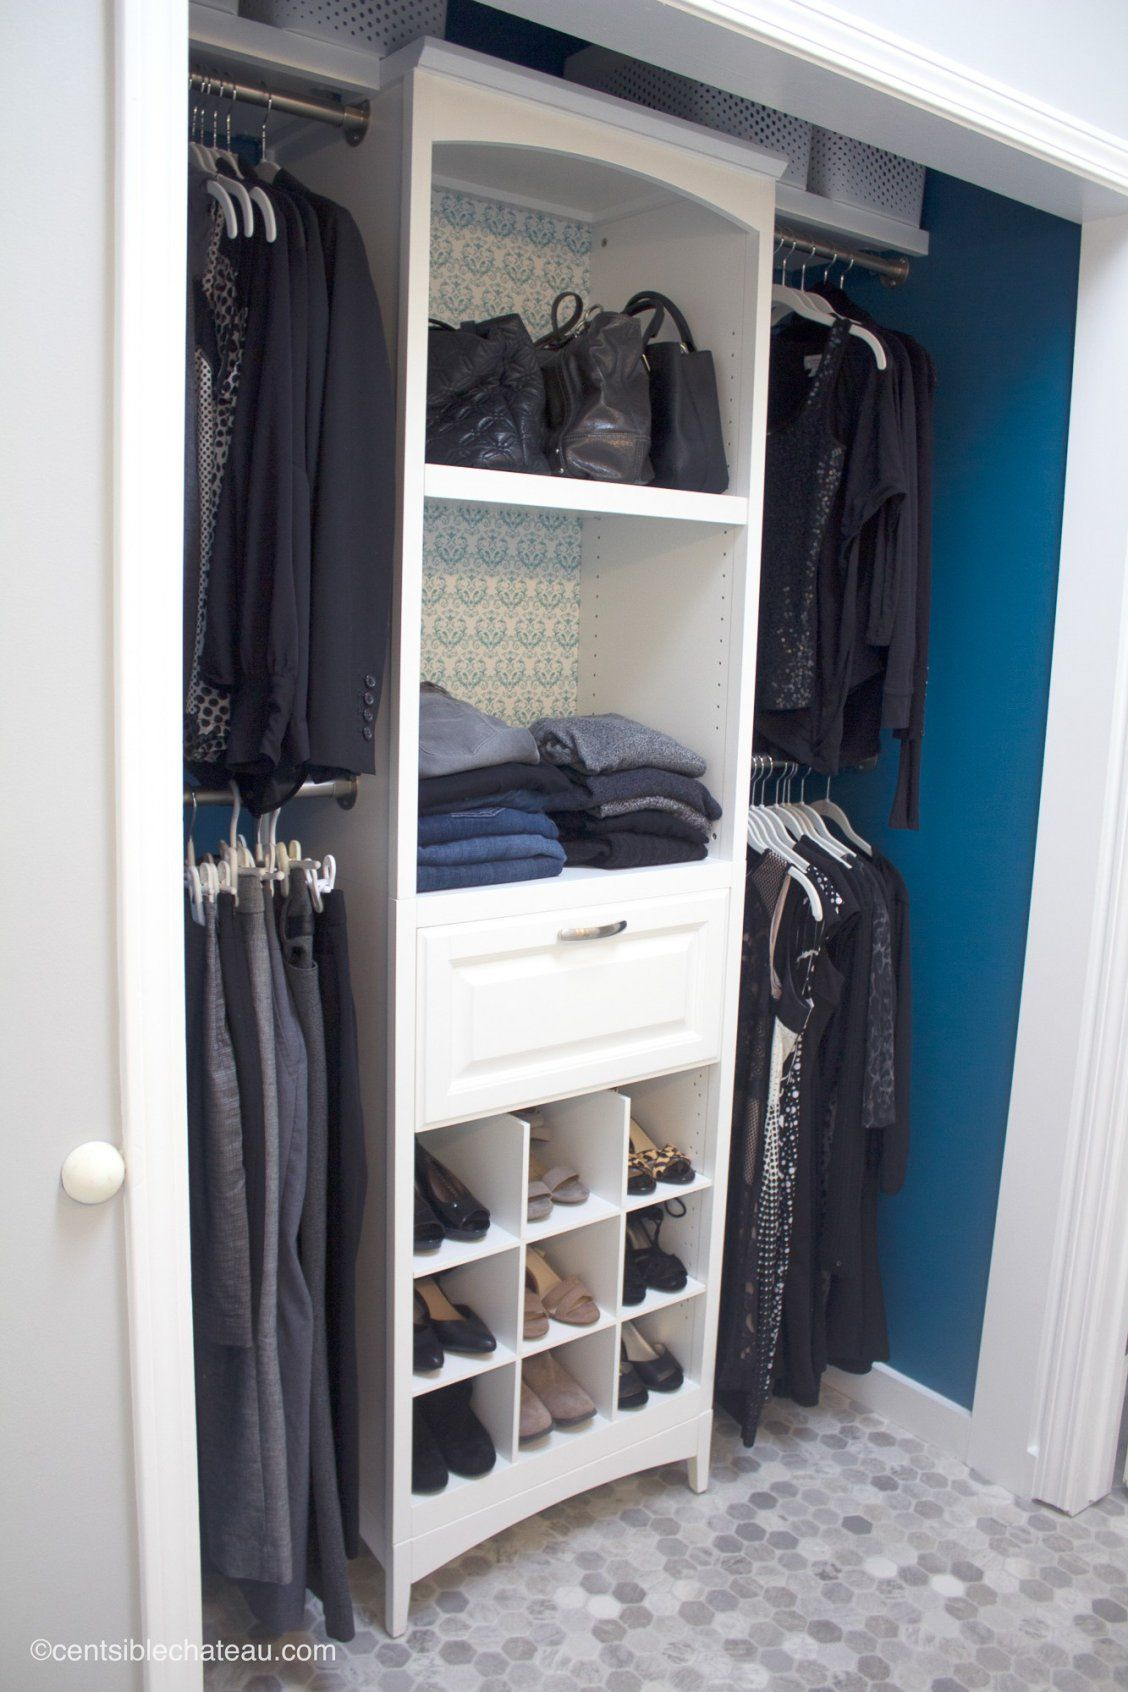 How to Improve Your Storage with an Elegant Closet Organizer ...